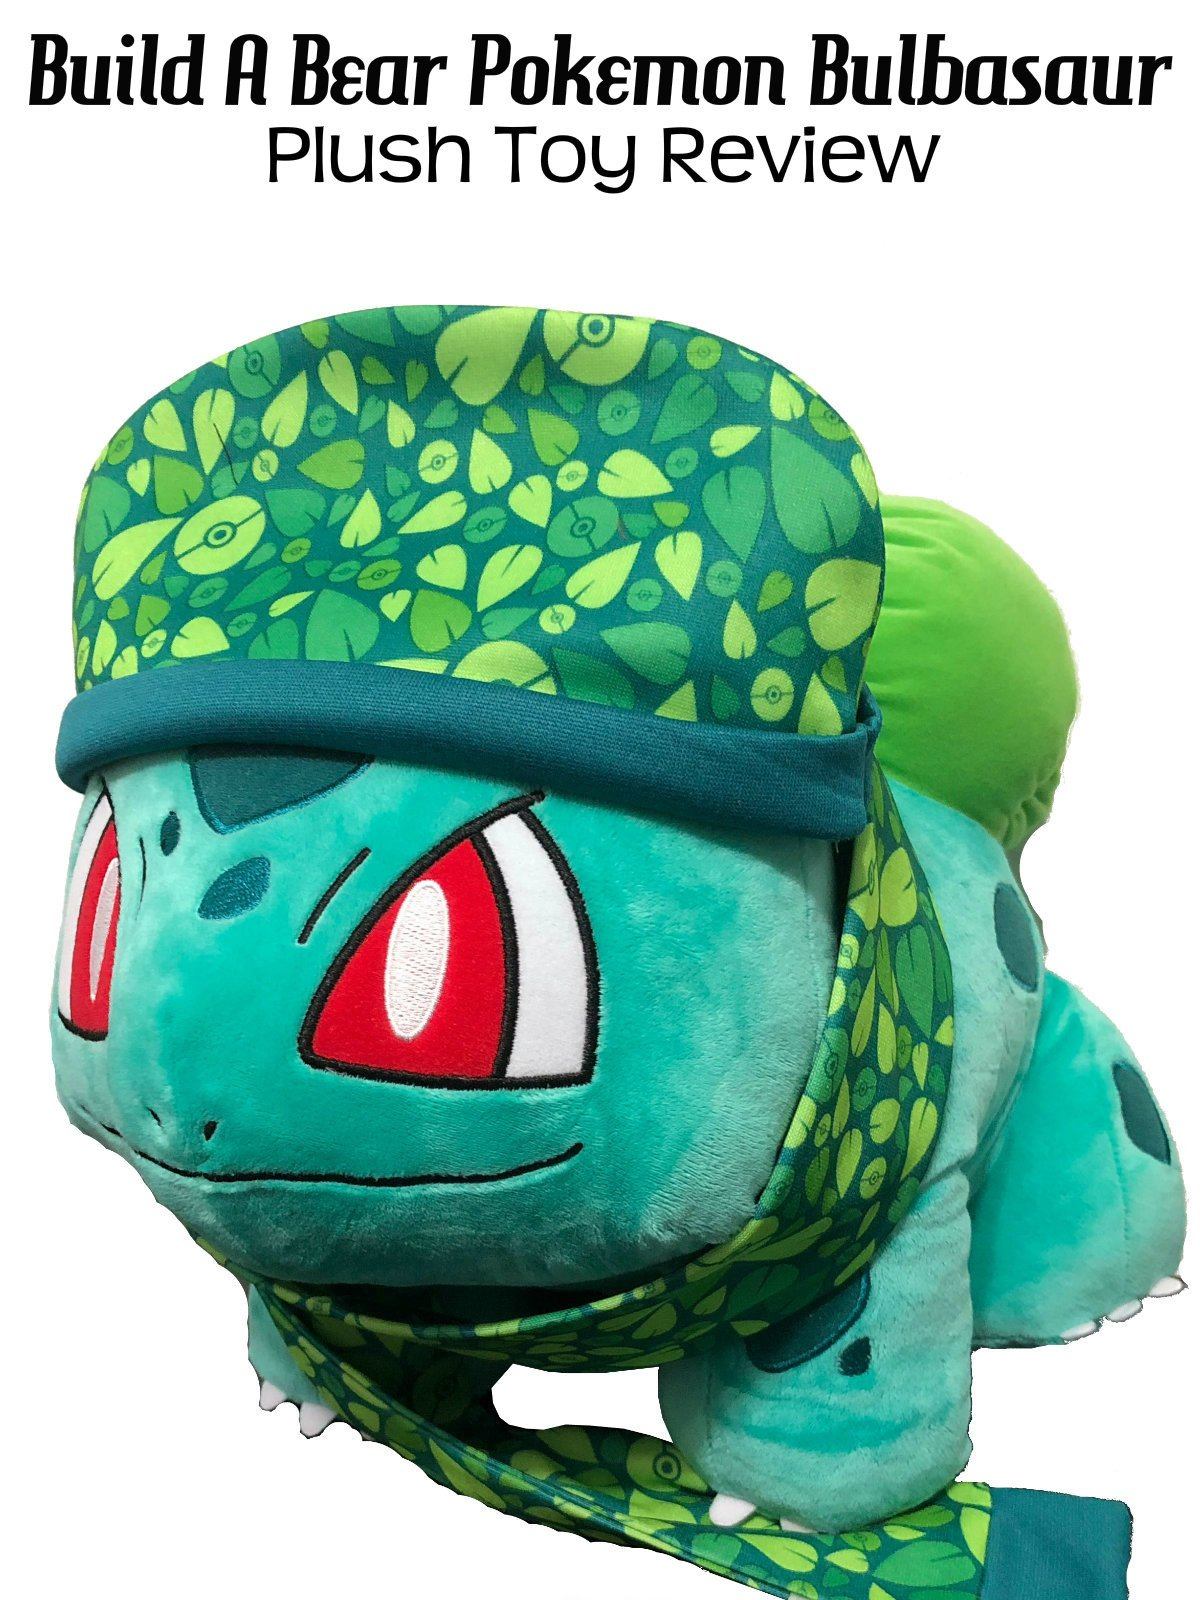 Review: Build A Bear Pokemon Bulbasaur Plush Toy Review